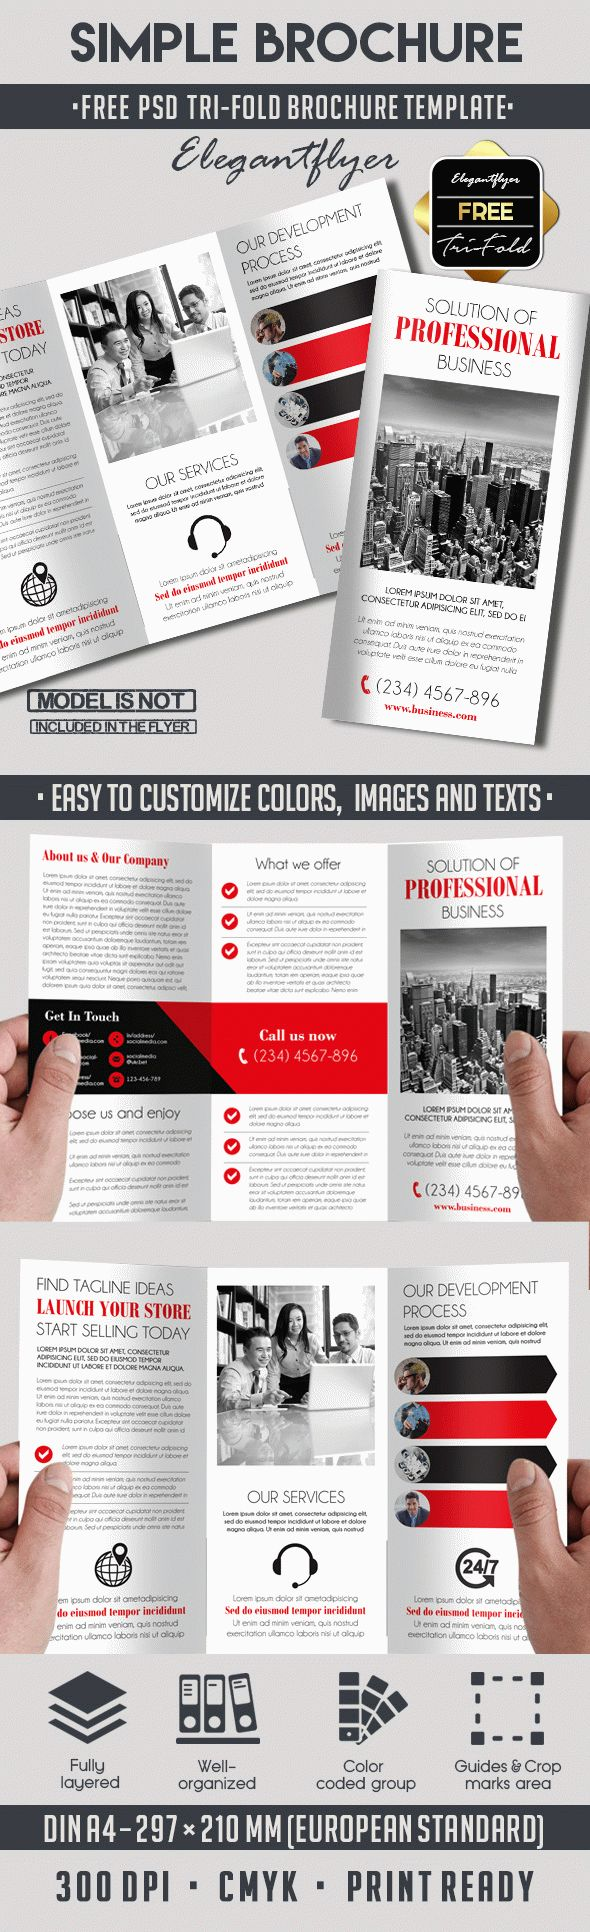 Simple free tri fold psd brochure template by elegantflyer for Free template for brochure tri fold